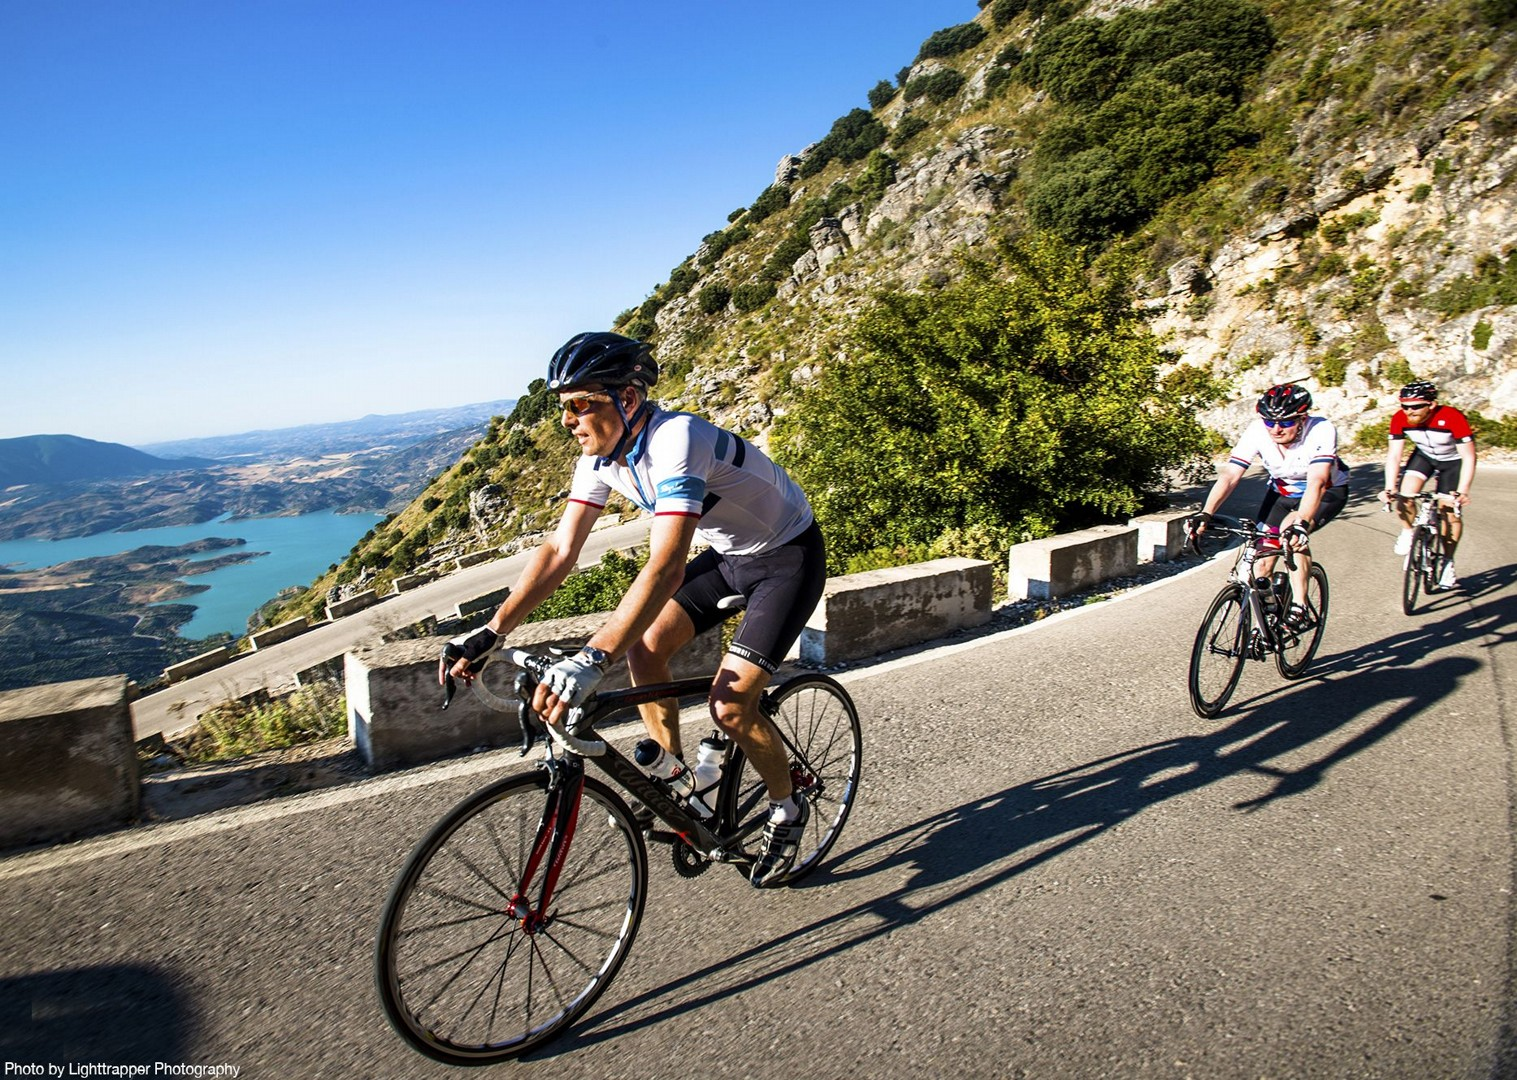 enjoyable-challenging-road-cycling-holiday-spain-self-guided.jpg - Southern Spain - Andalucia - Los Pueblos Blancos - Self-Guided Road Cycling Holiday - Road Cycling